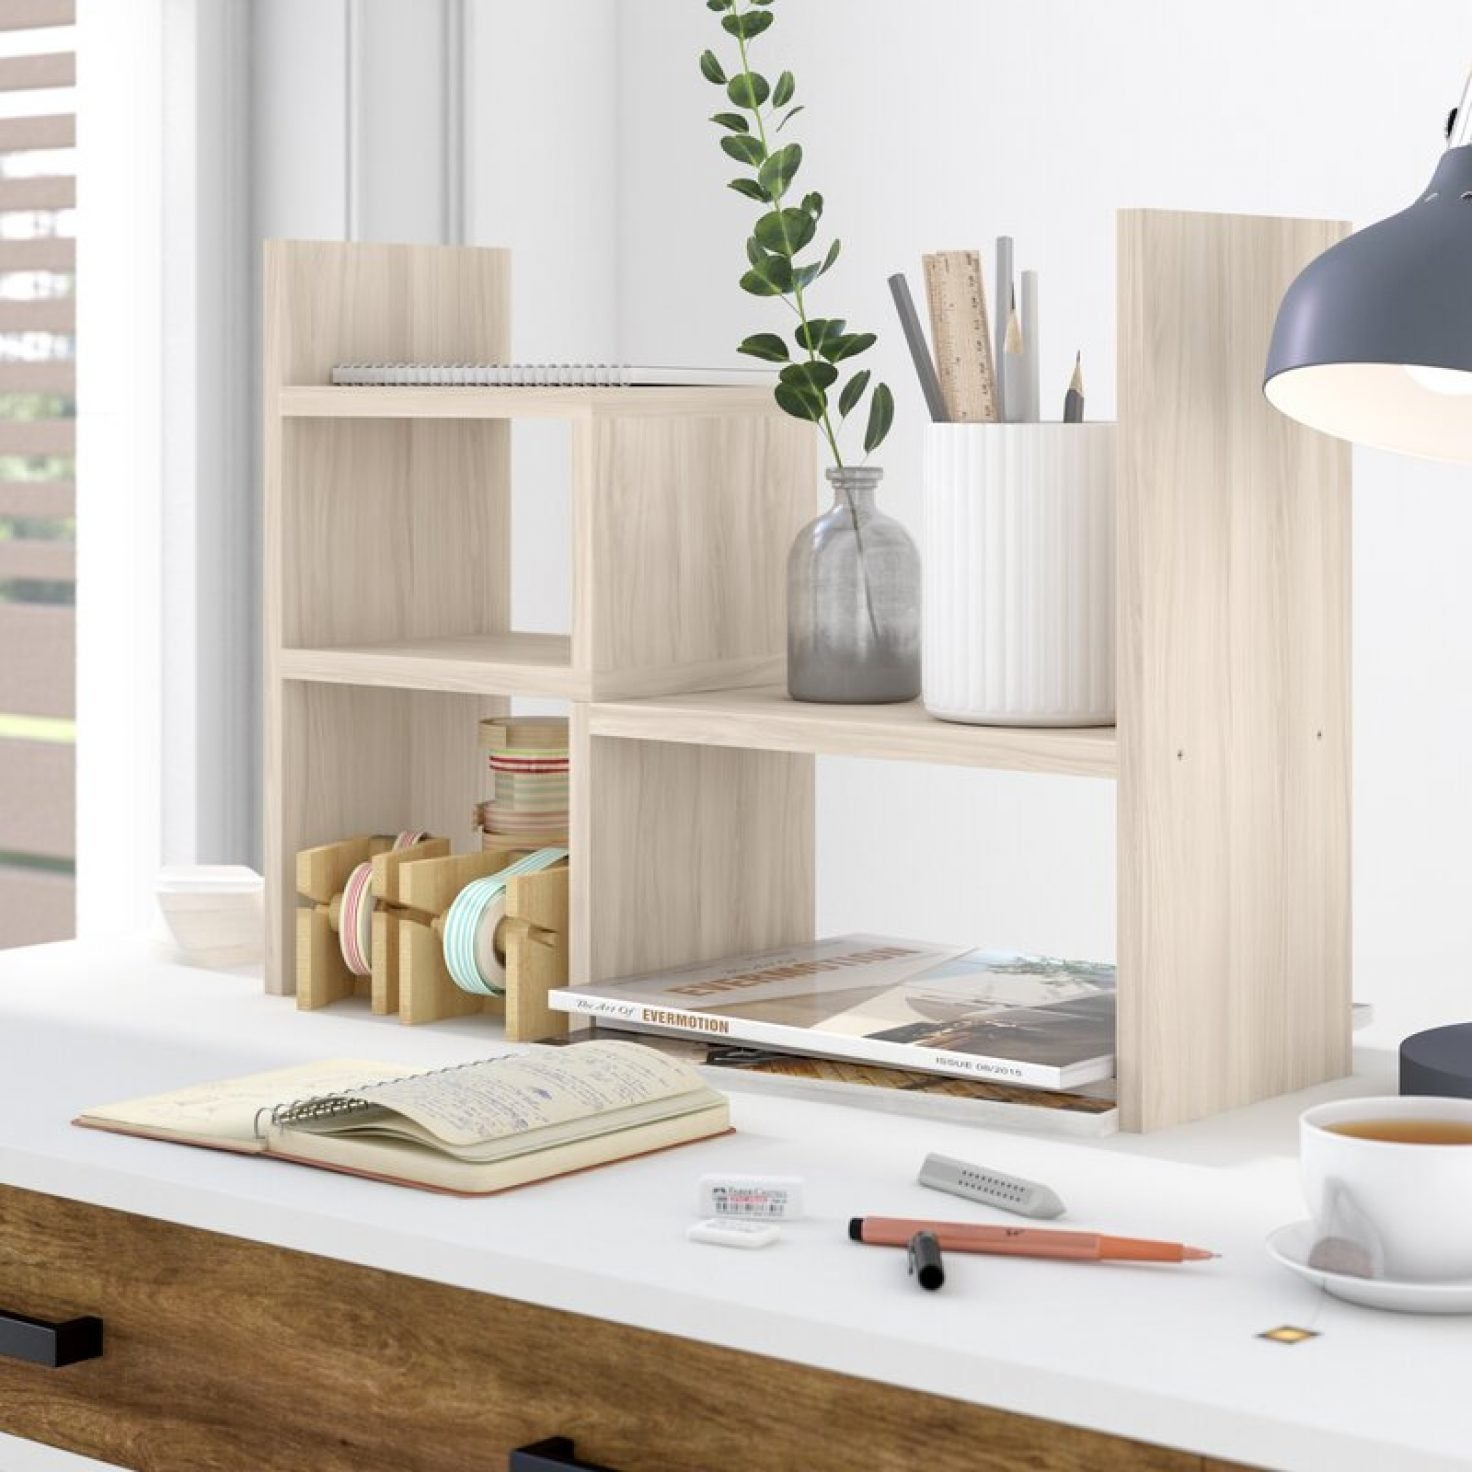 Get Your Work Space Together With These Chic Desk Accessories